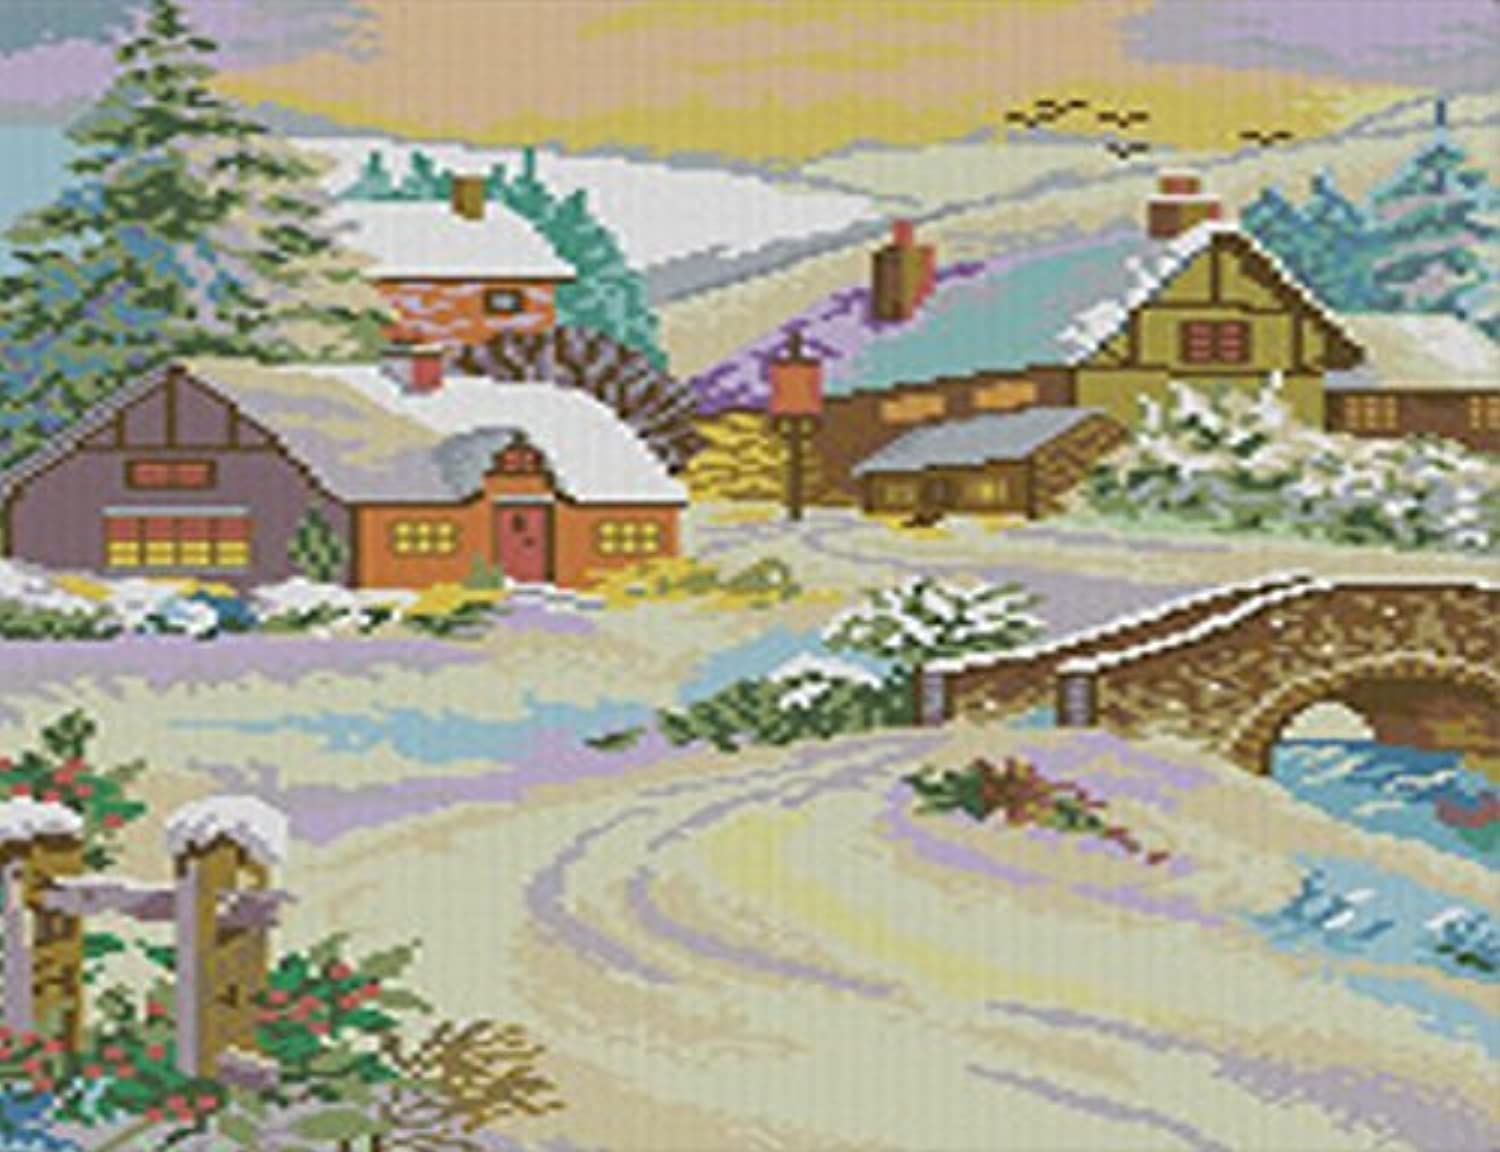 Qihu's 5d Crystal Diamond Painting DIY Counted Paint By Number Kits, Winter Scene Snow Village Country Cottage House Christmas Picture by Qihu [並行輸入品]